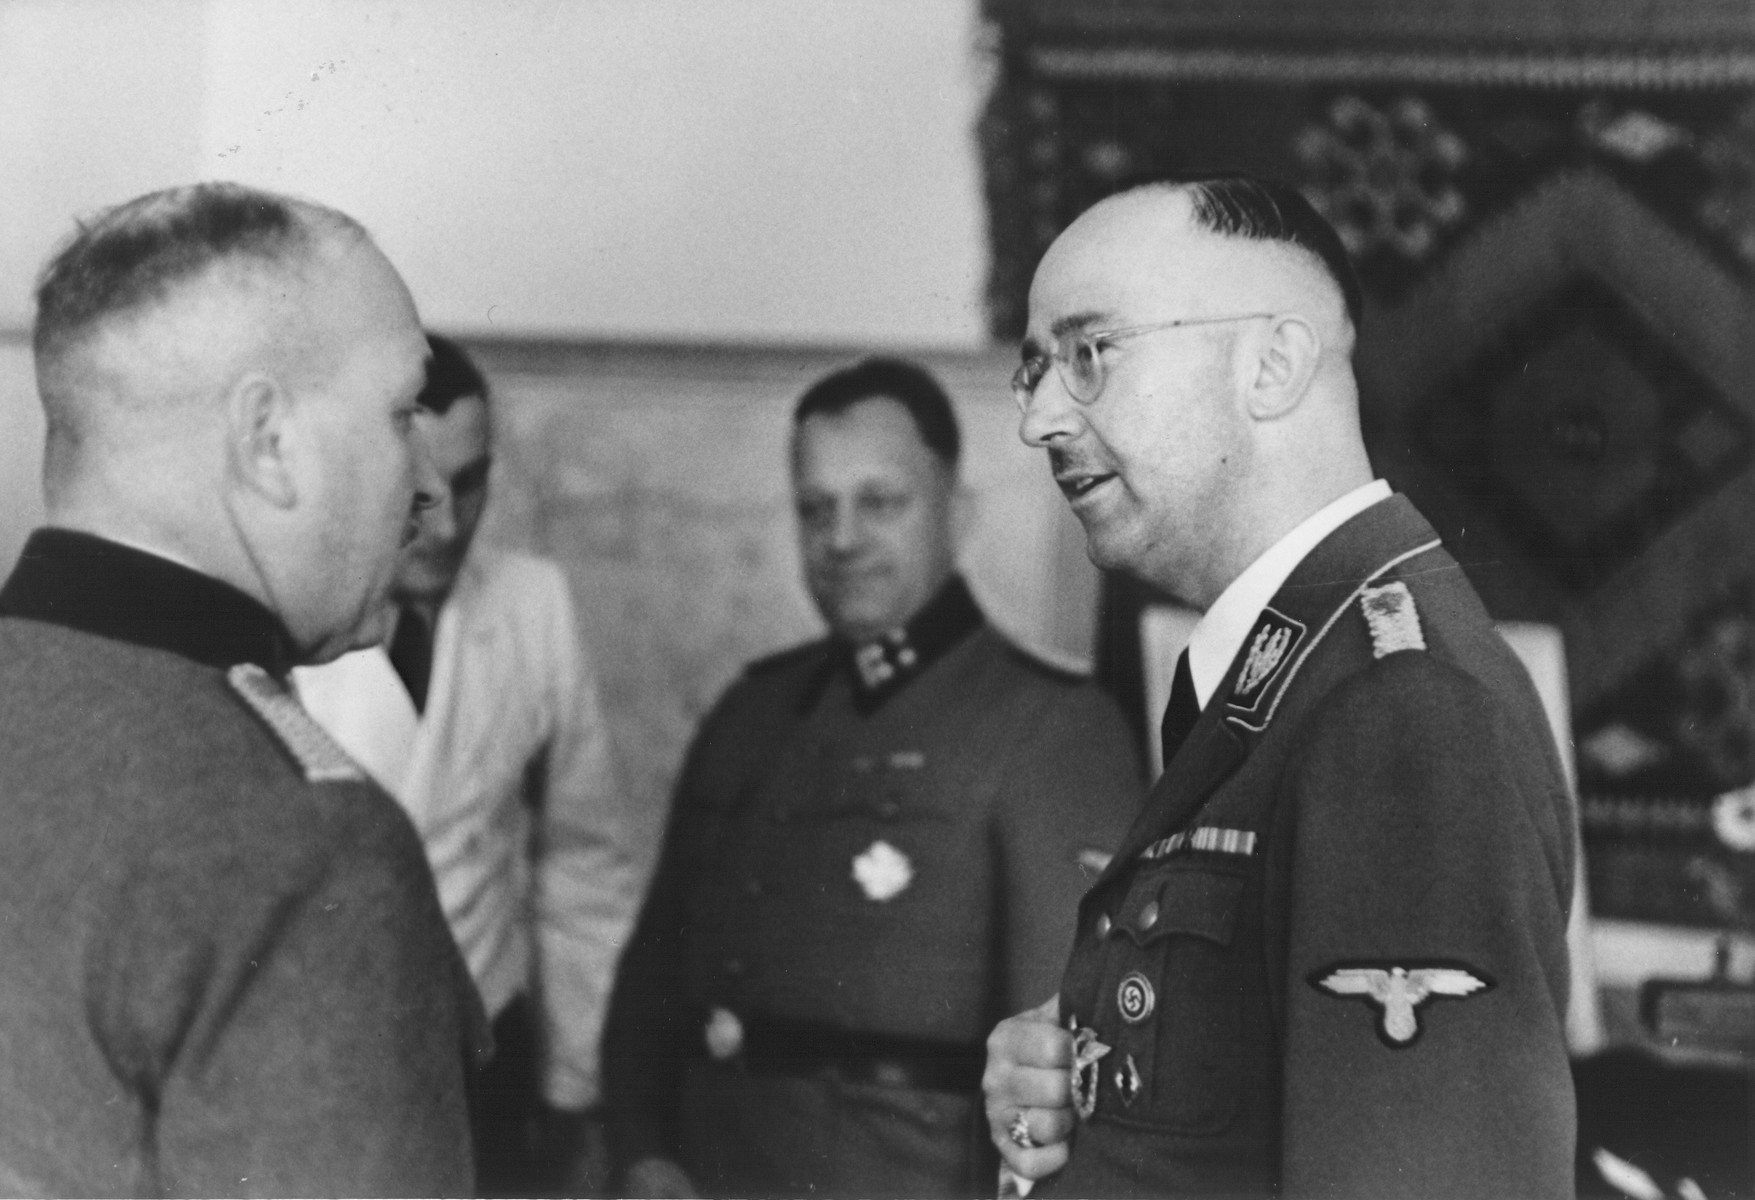 Reichsfuehrer-SS Heinrich Himmler accepts the well wishes of SS police officers on the occasion of his birthday at SS headquarters in the Hegewald bei Zhitomir compound.  The man speaking with Himmler is a member of the Ordnungspolizei.  Pictured in the center SS Obersturmbannfuehrer Josef Tiefenbacher.